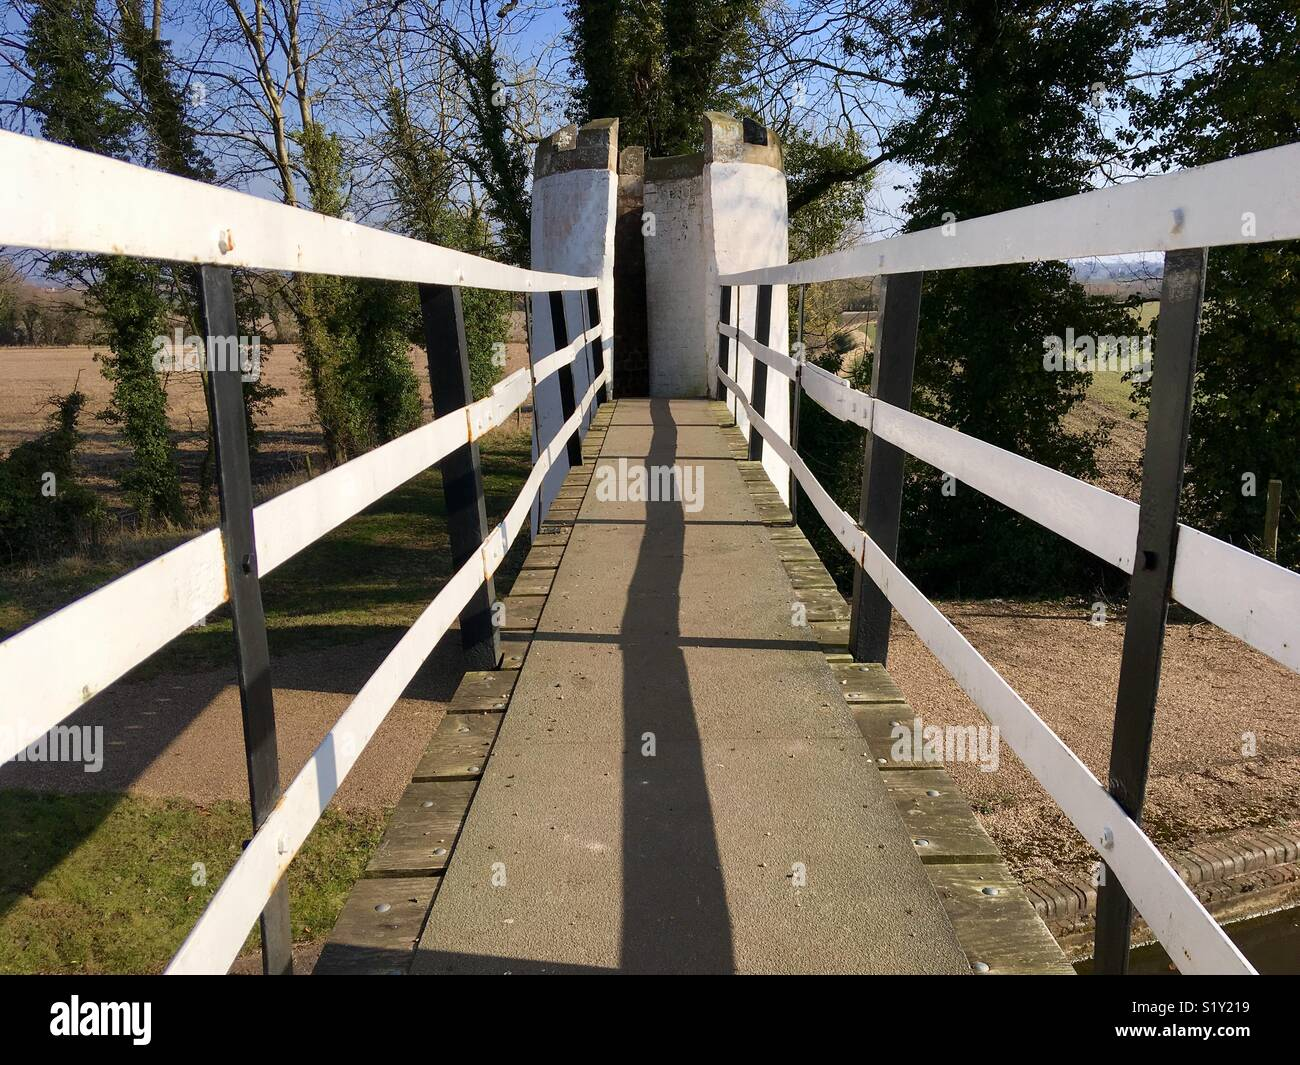 Architecturally quirky footbridge over a canal - Stock Image